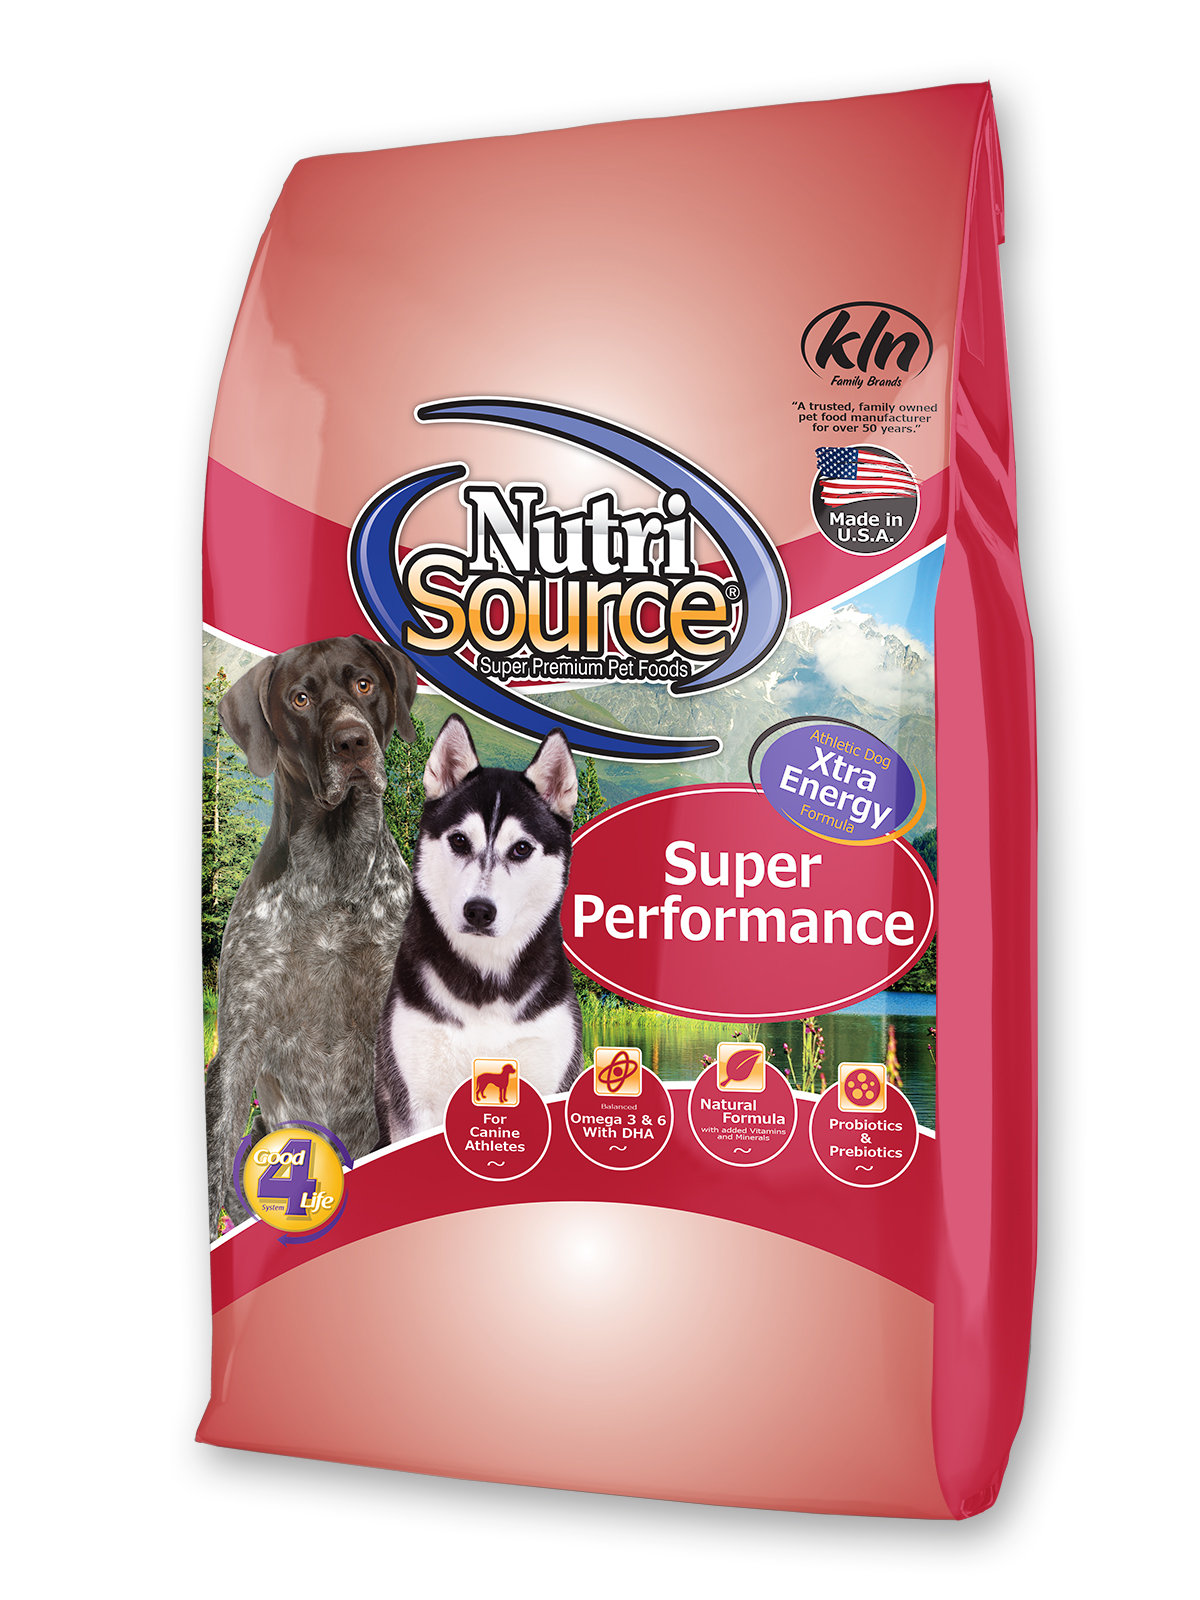 Nutrisource Super Performance 40lb The Paw Spa